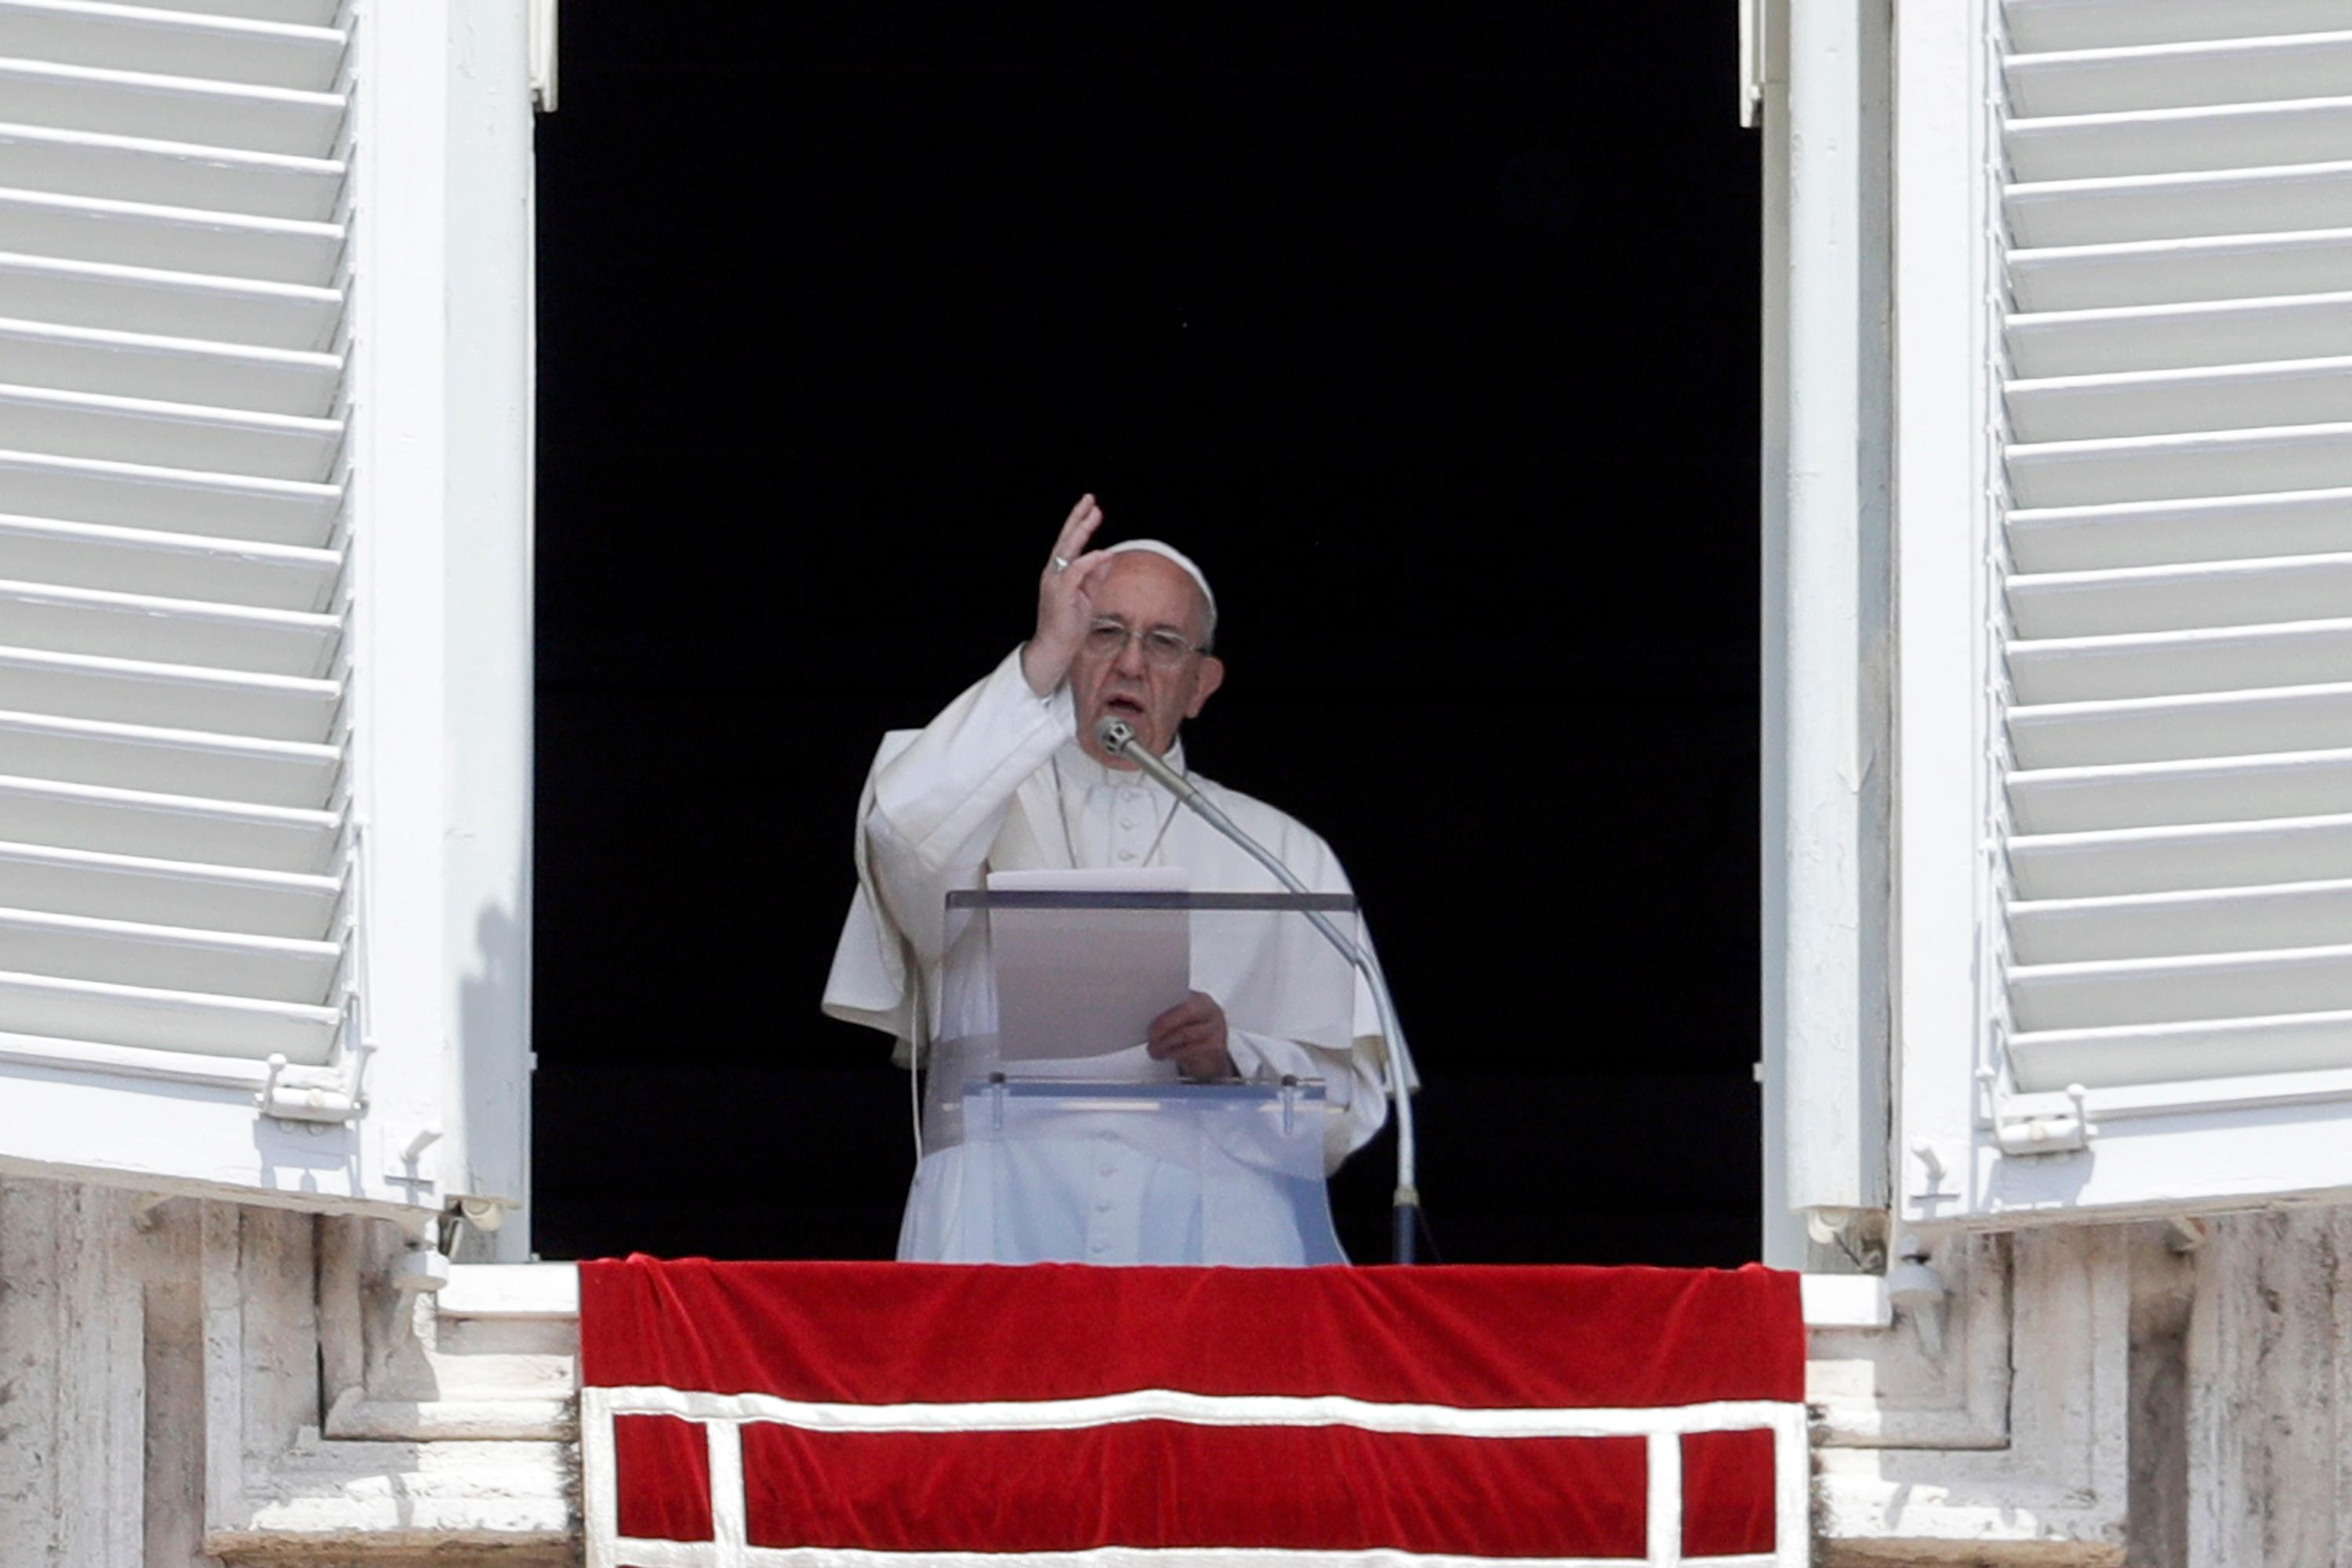 Pope Francis blesses faithful from his studio's window overlooking St. Peter's Square on the occasion of the Regina Coeli noon prayer at the Vatican, Sunday, May 14, 2017. (AP Photo/Gregorio Borgia)